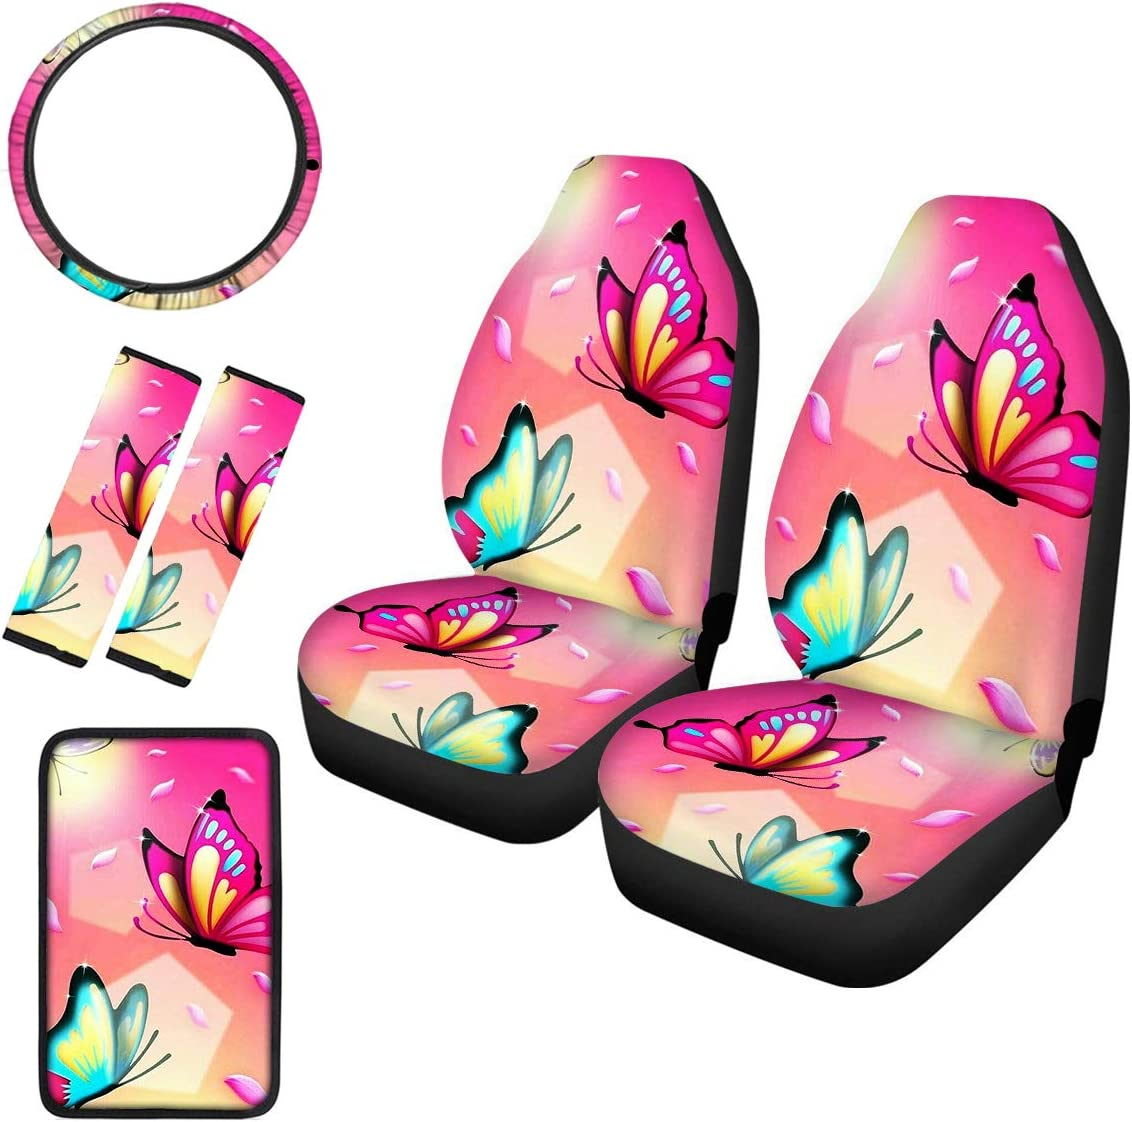 Cozeyat Dolphin Car Seat Protector 6 Pieces Set,2pc Front Seat Cover 1pc Steering Wheel Cover+2pc Car Seat Belt Cushions+1pc Car Armrest Center Pad,Universal Fit Car Interior Decoration